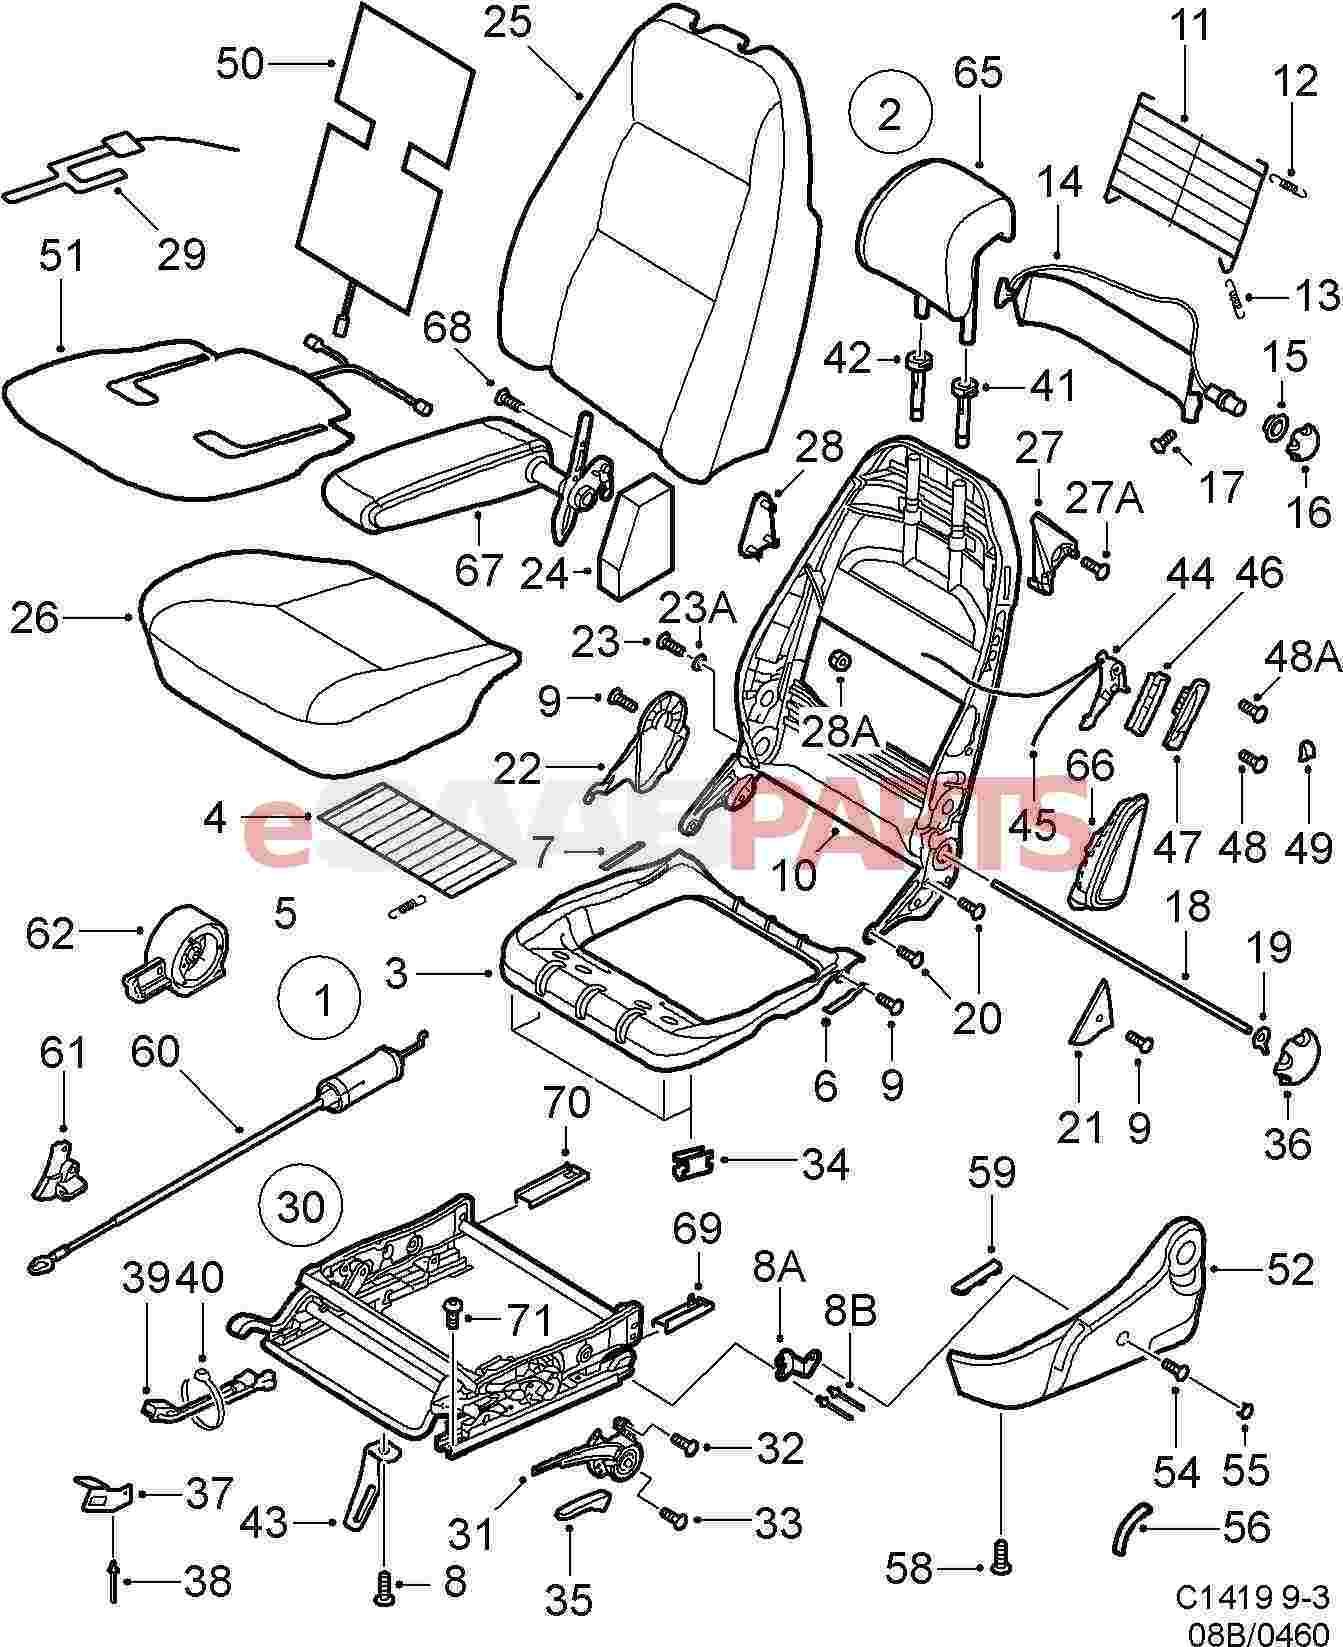 Saab 9 3 Parts Diagram Interior on 2007 saab 9 3 fuse box diagram